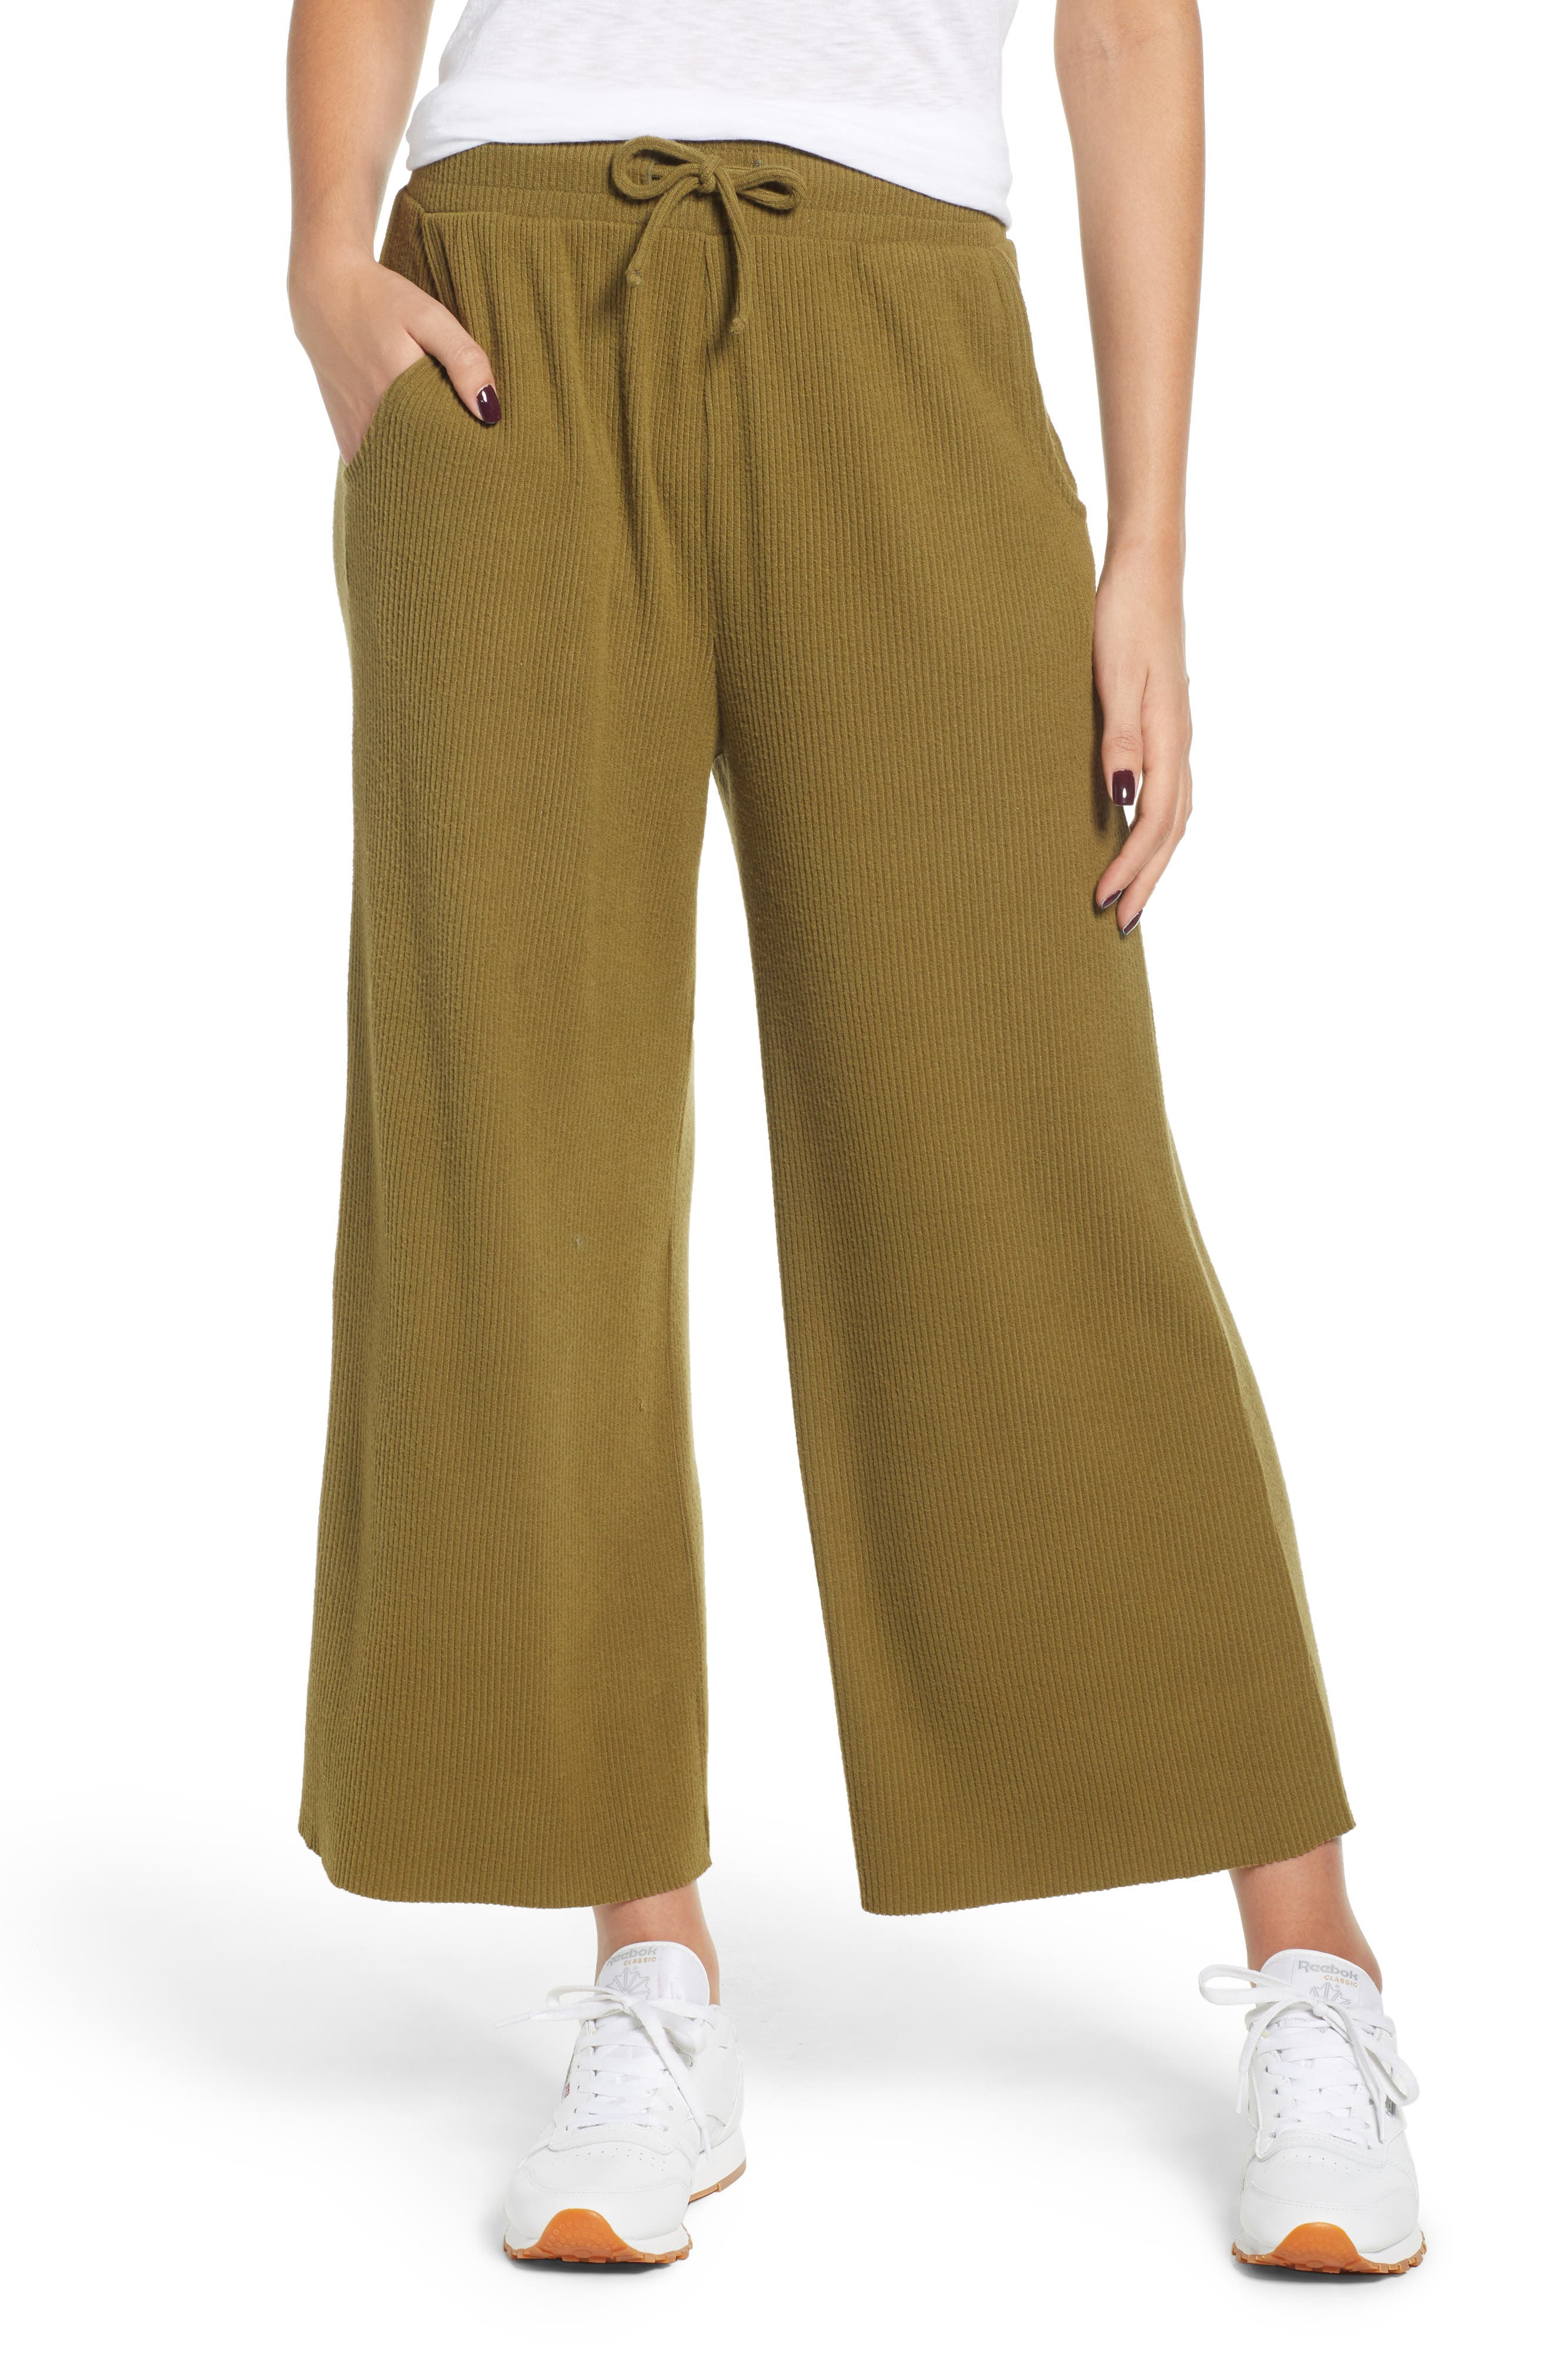 Should womens pants have a crease